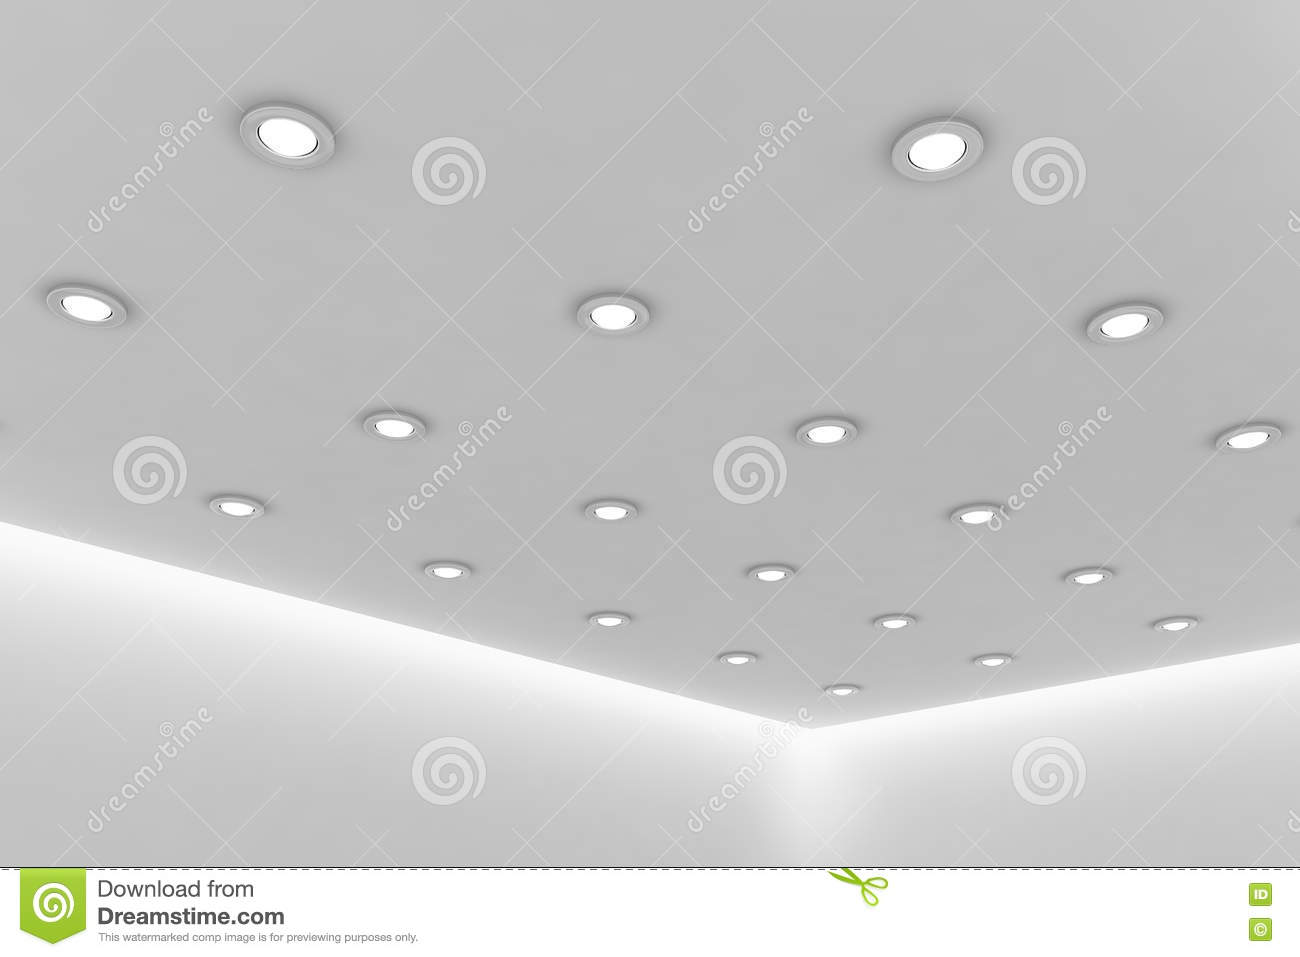 office ceiling lamps office ceiling of empty white room with round ceiling lamps royalty free stock architecture ideas lobby office smlfimage